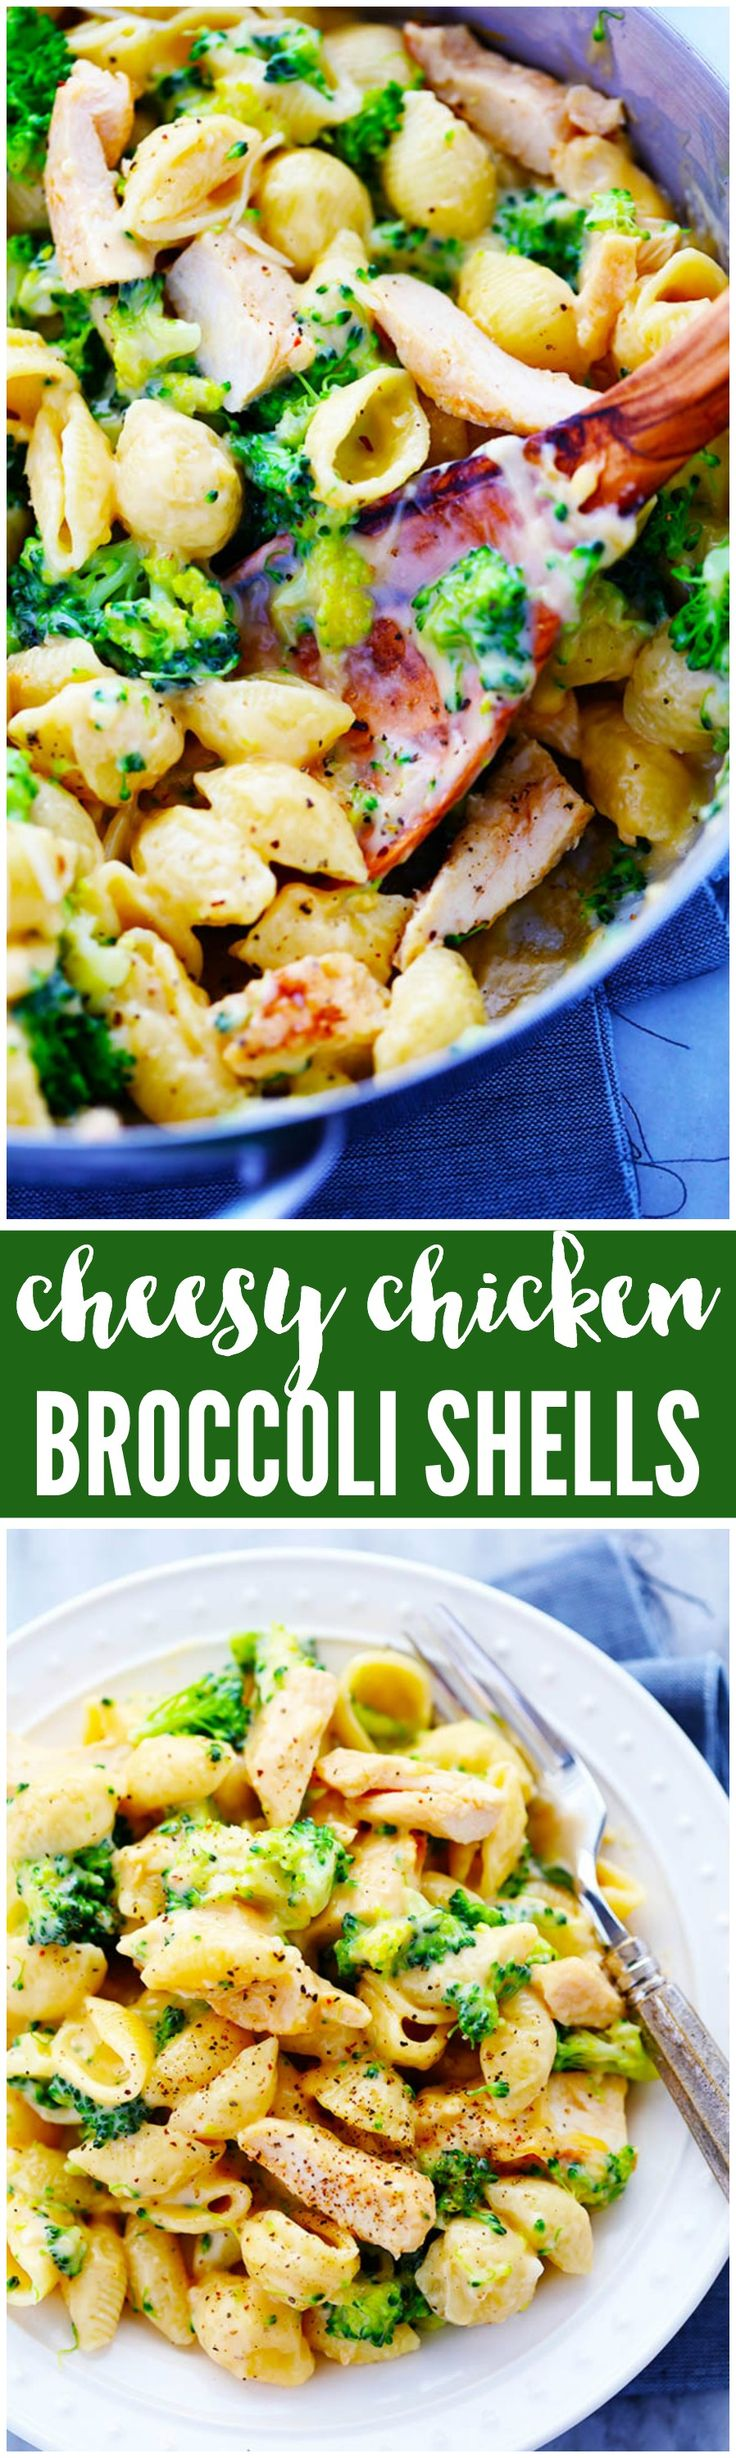 Ditch the boxed mac and cheese and make these amazingly creamy and cheesy chicken broccoli shells. This meal is sure to be a huge hit with the family!